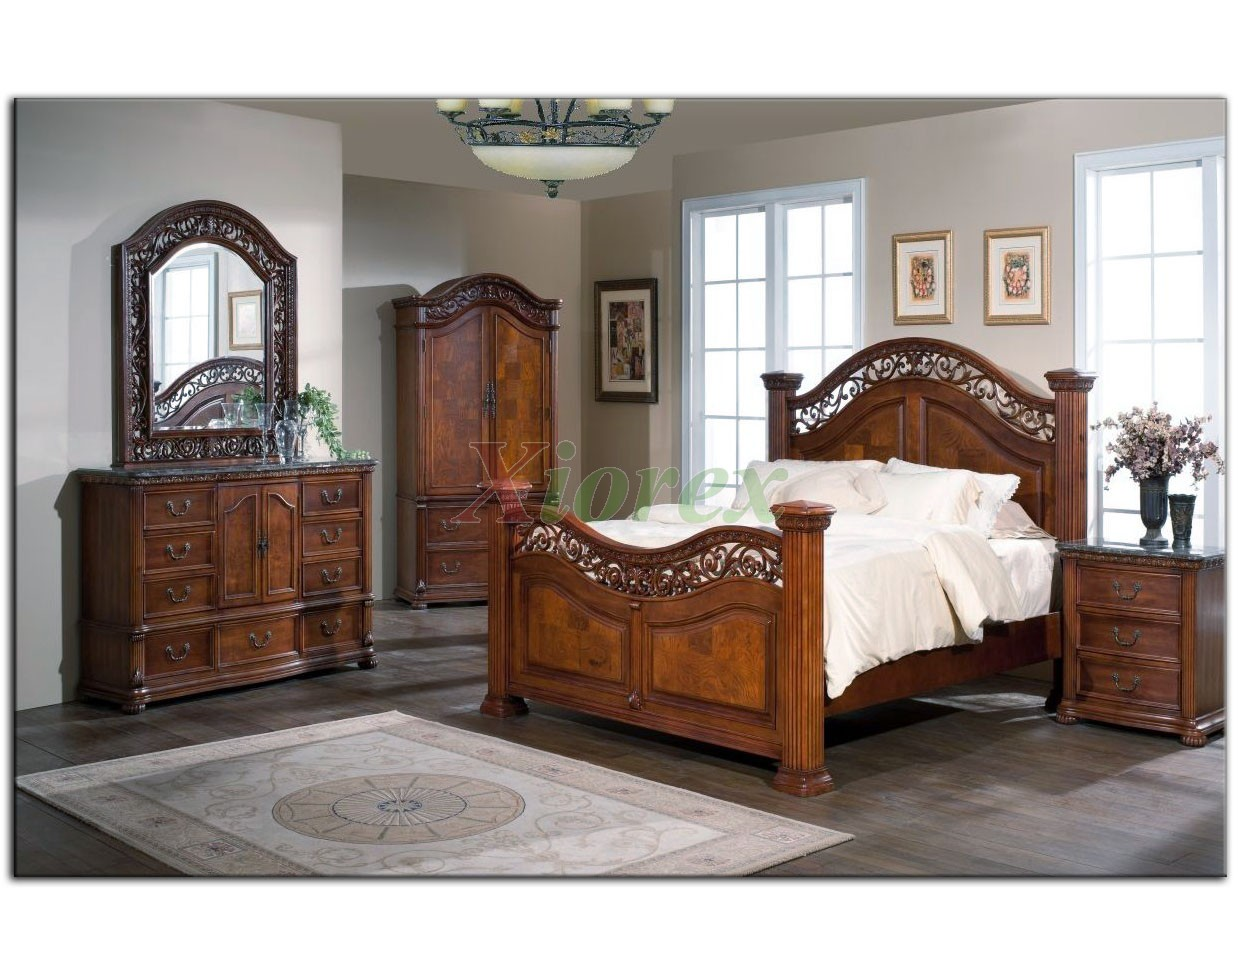 Poster bedroom furniture set 114 xiorex Bedrooms furniture